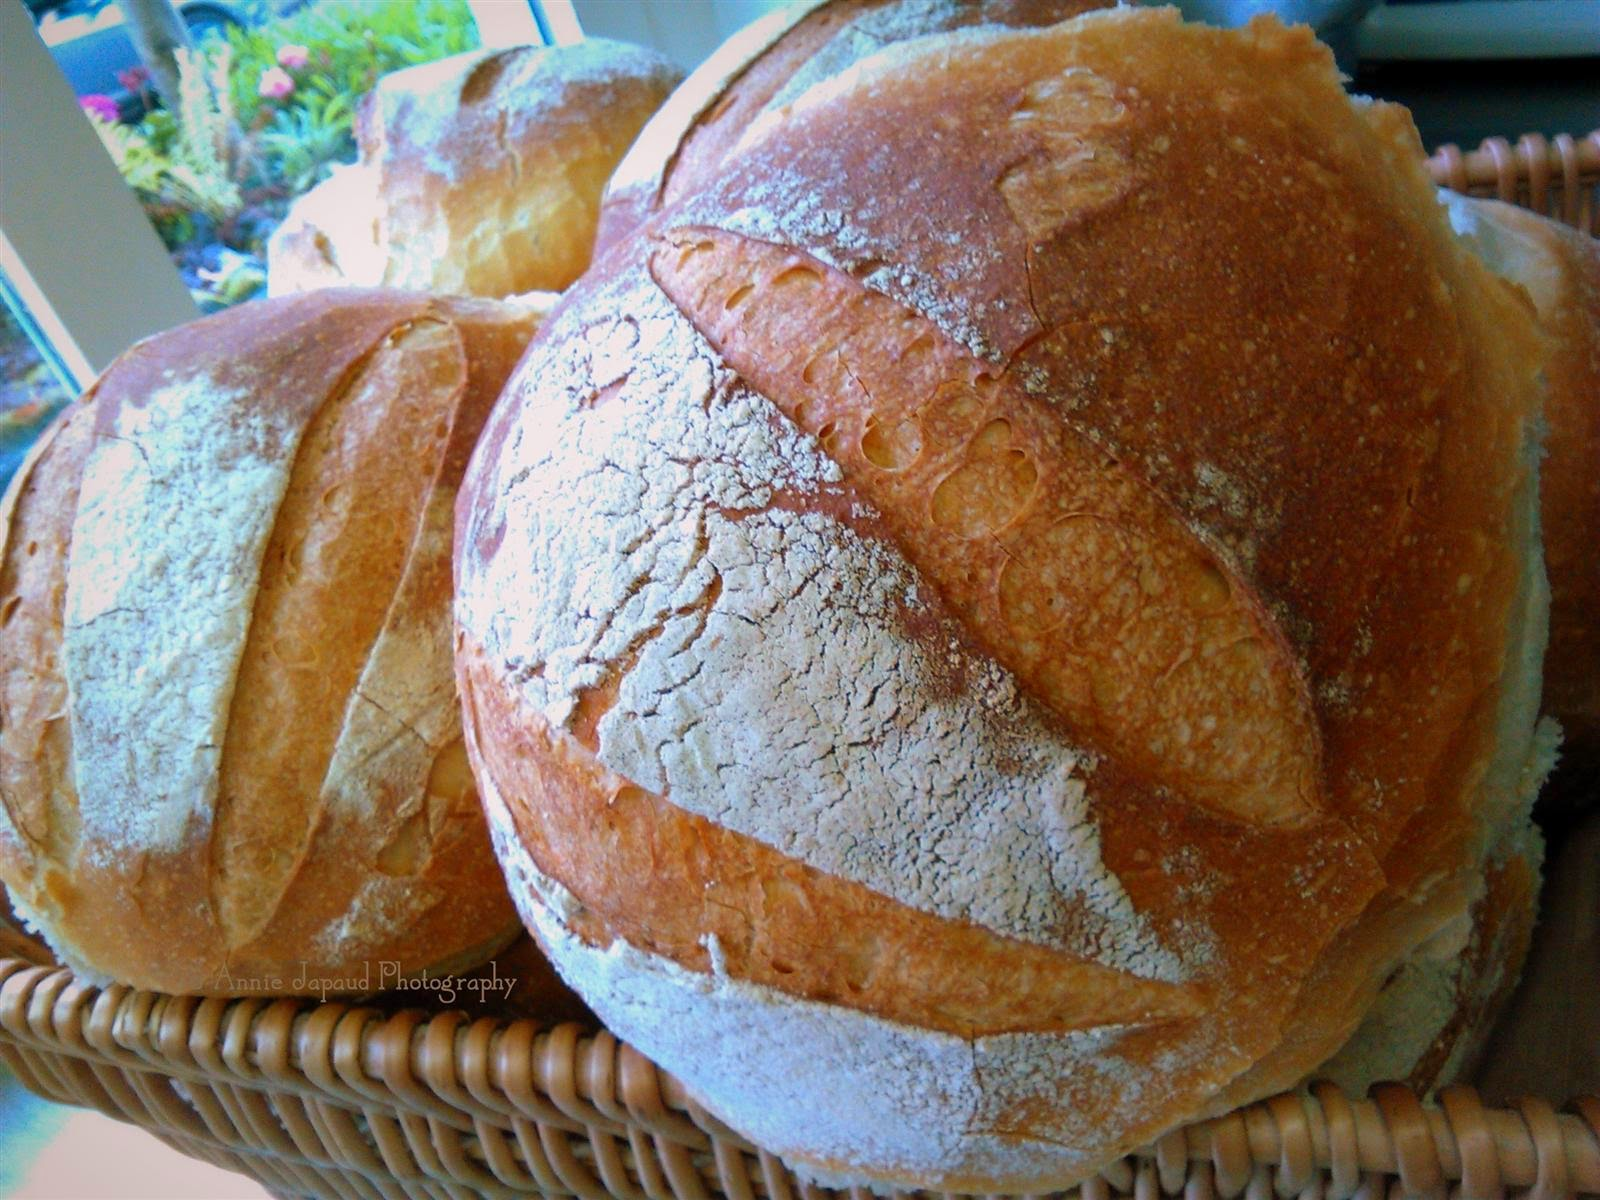 Sourdough bread image